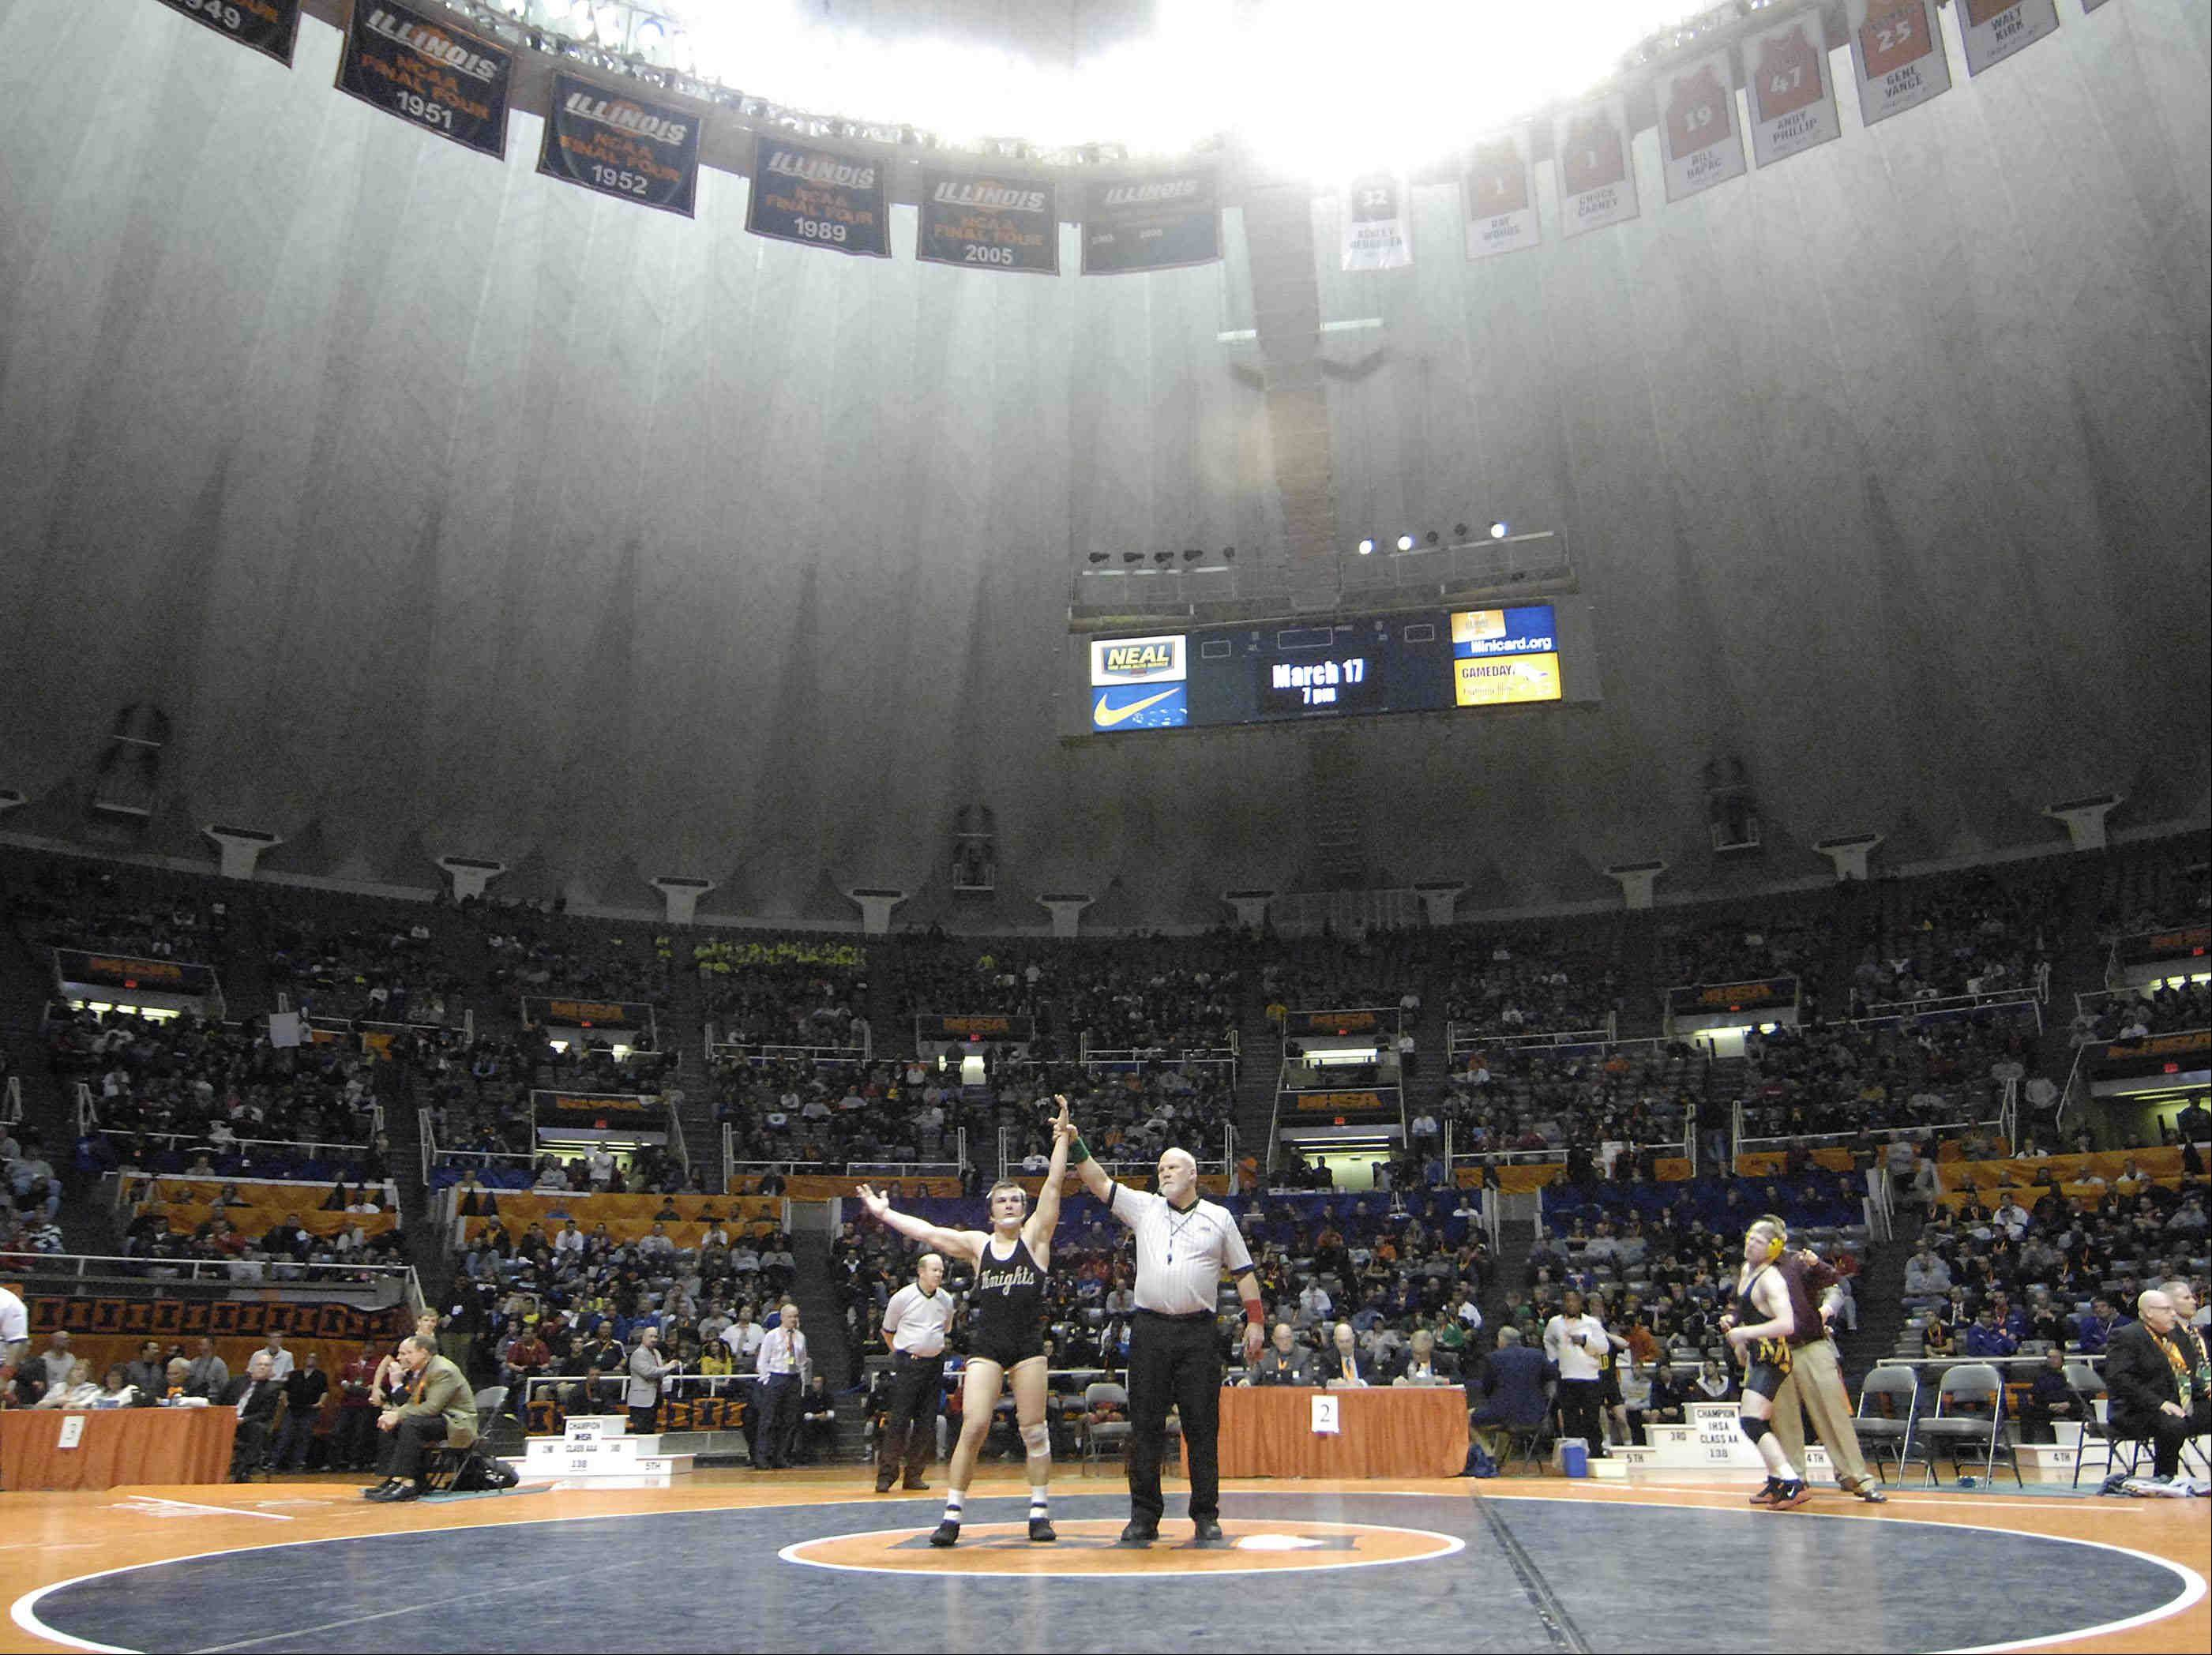 Kaneland's Dan Goress is declared the winner in the Class 2A 145-pound IHSA championship final wrestling match at Assembly Hall in Champaign Saturday. He defeated Michael Sepke of Lombard Montini.